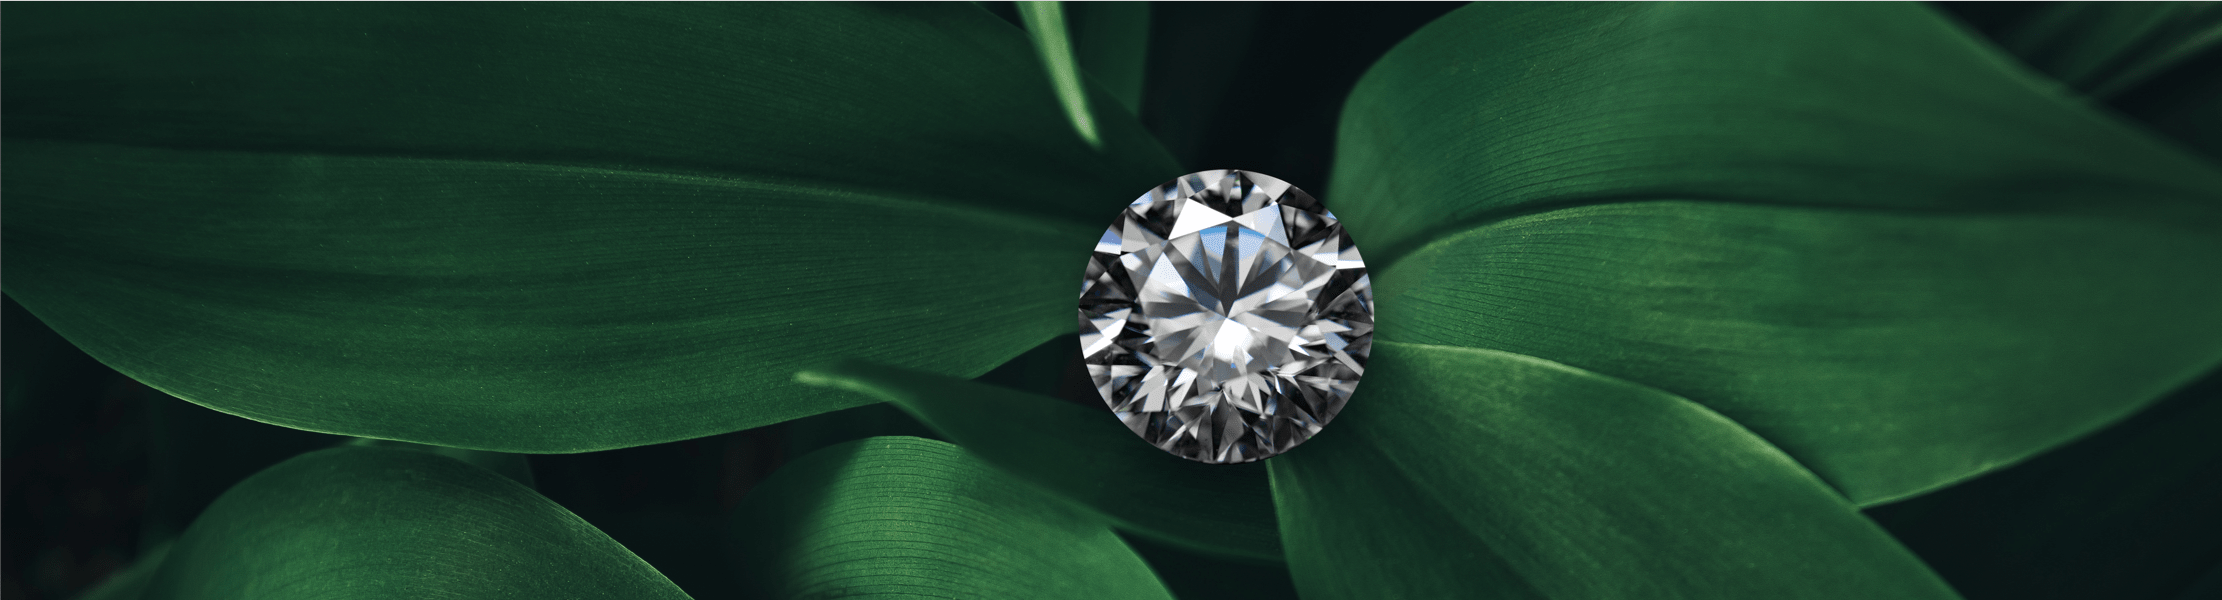 Yadav Offers Ethical and Affordable Lab Diamonds